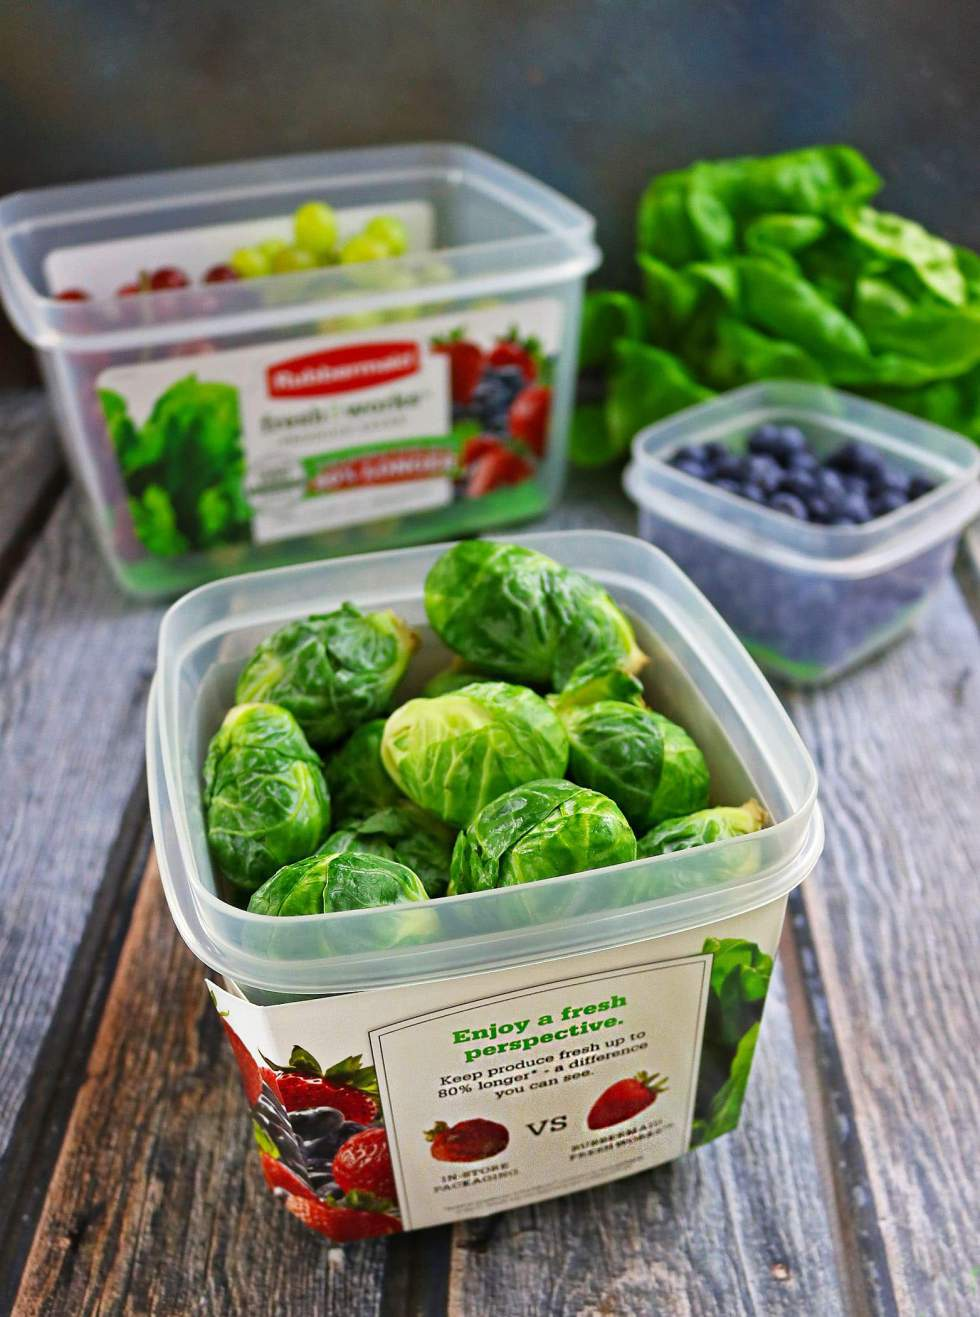 New Rubbermaid Fresh Works Containers